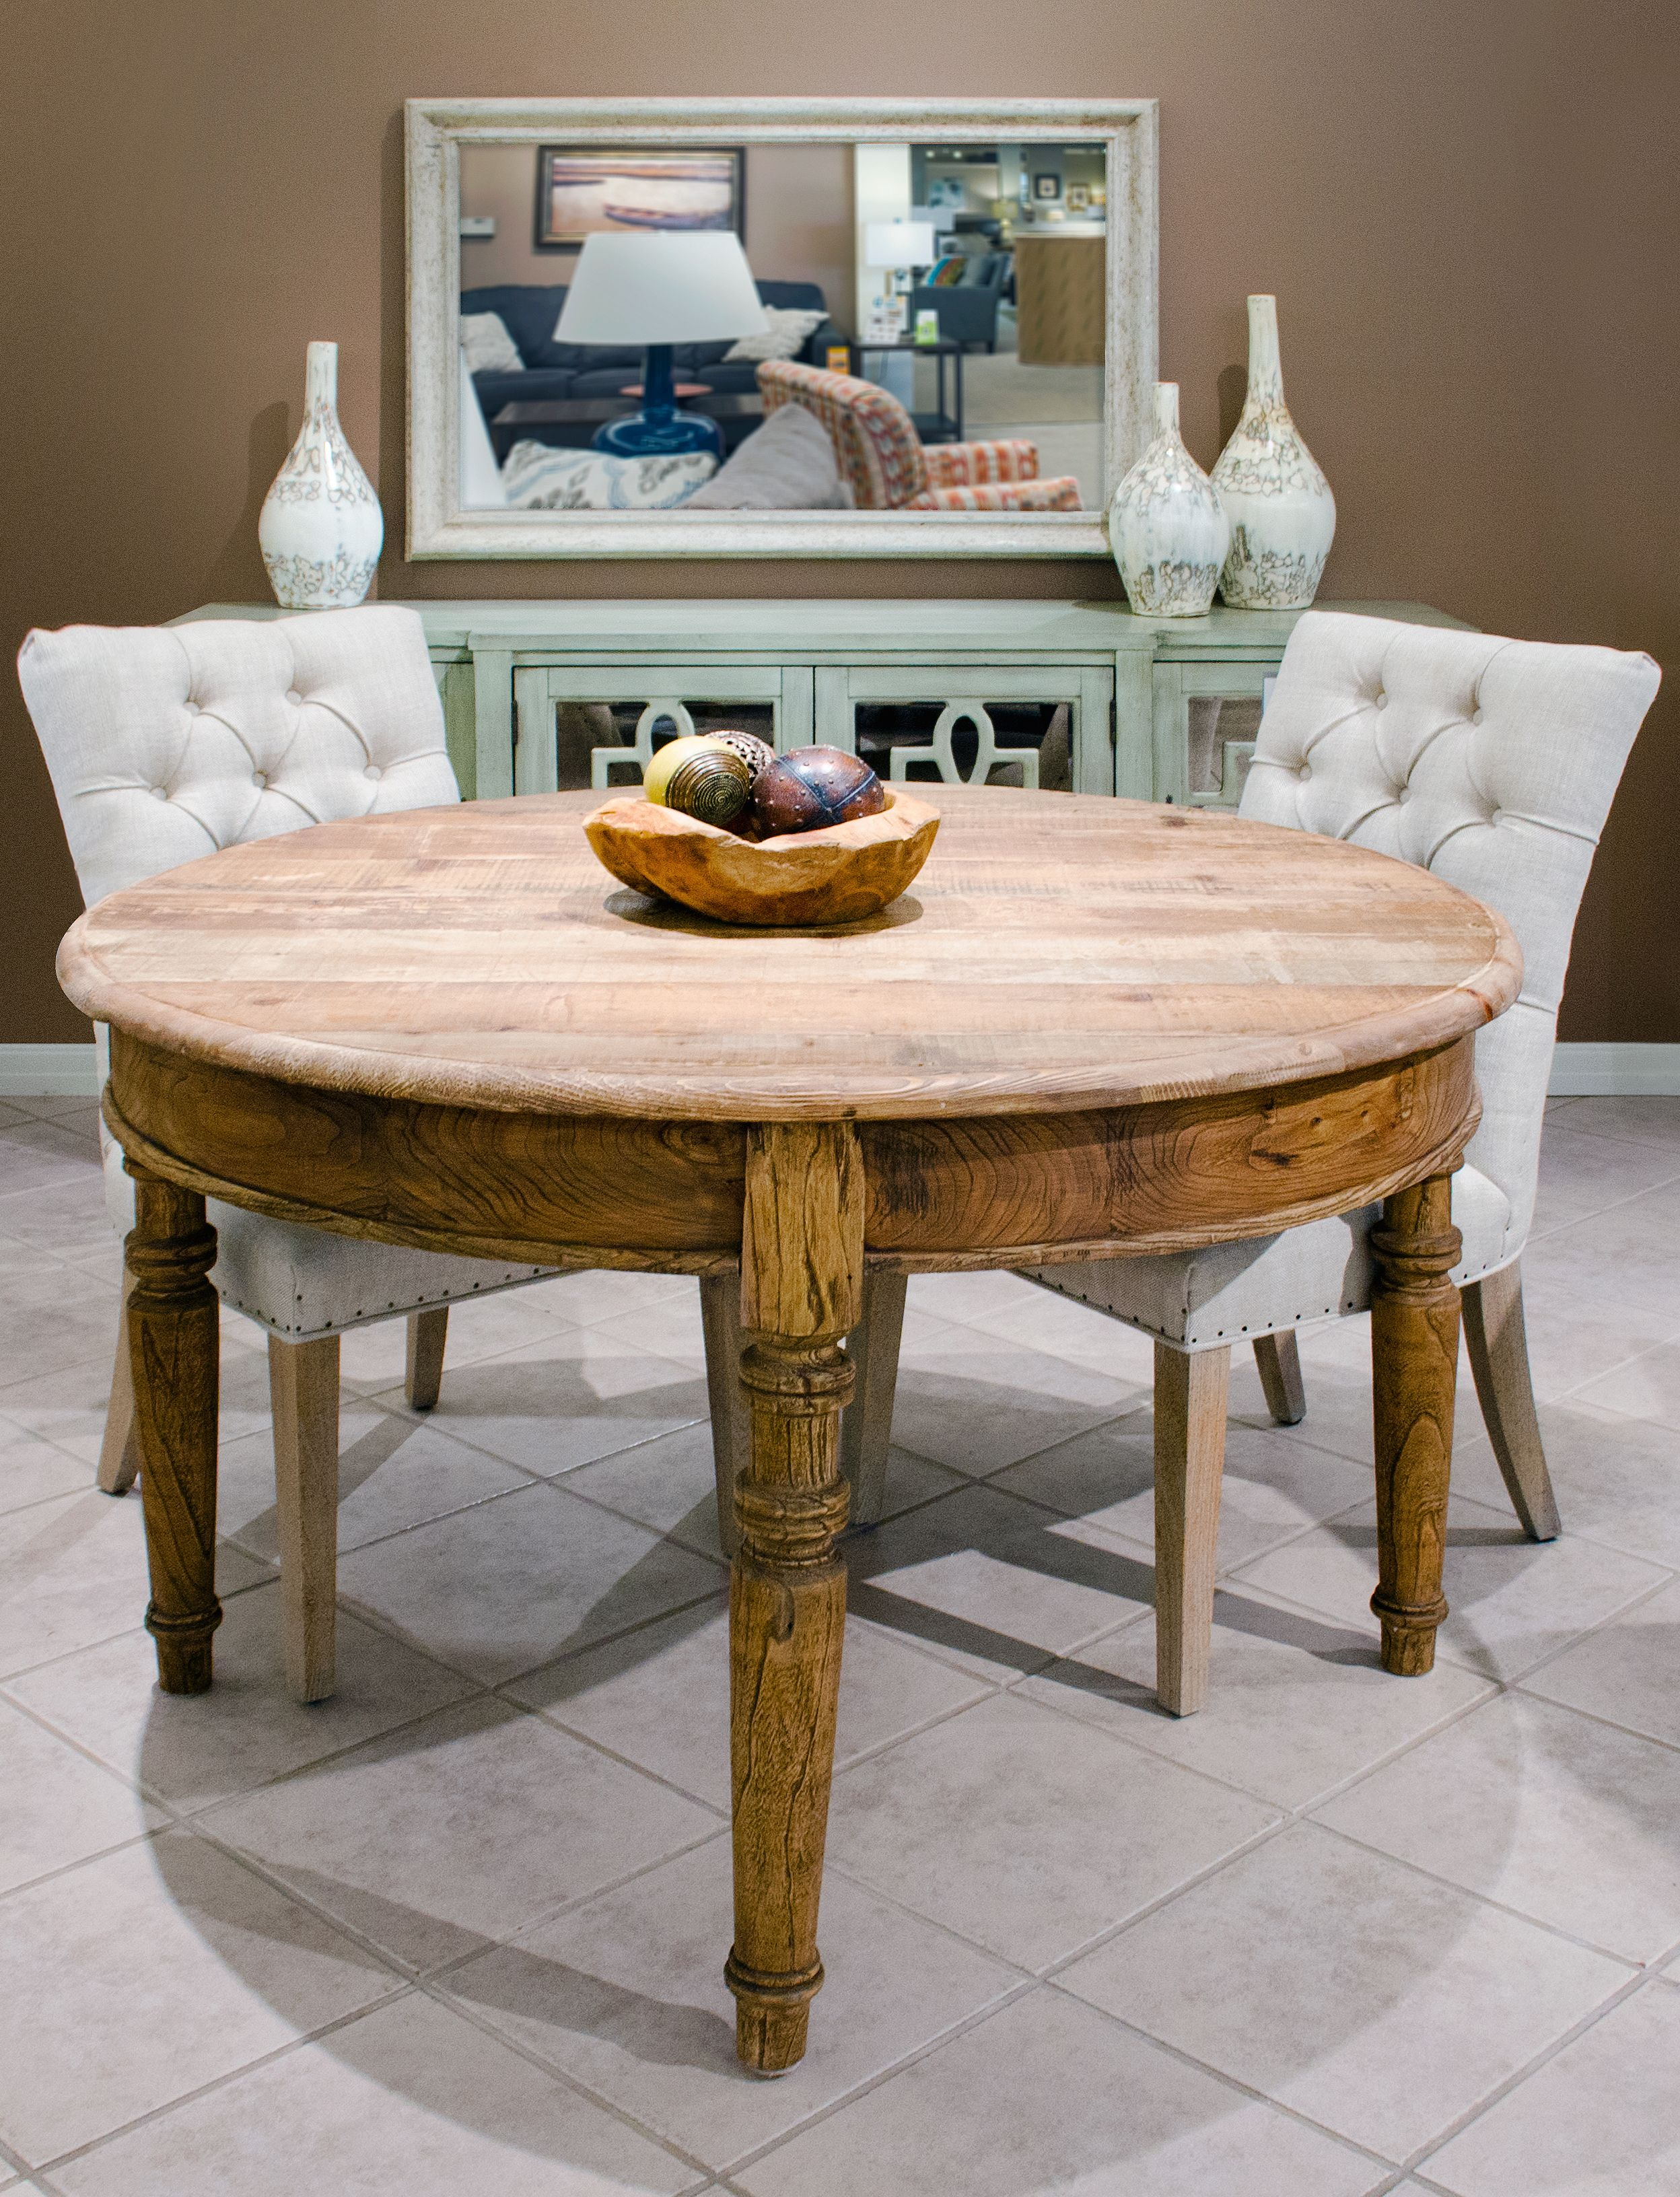 Brand Entanglement Set Using Pieces From Wg R Furniture And August